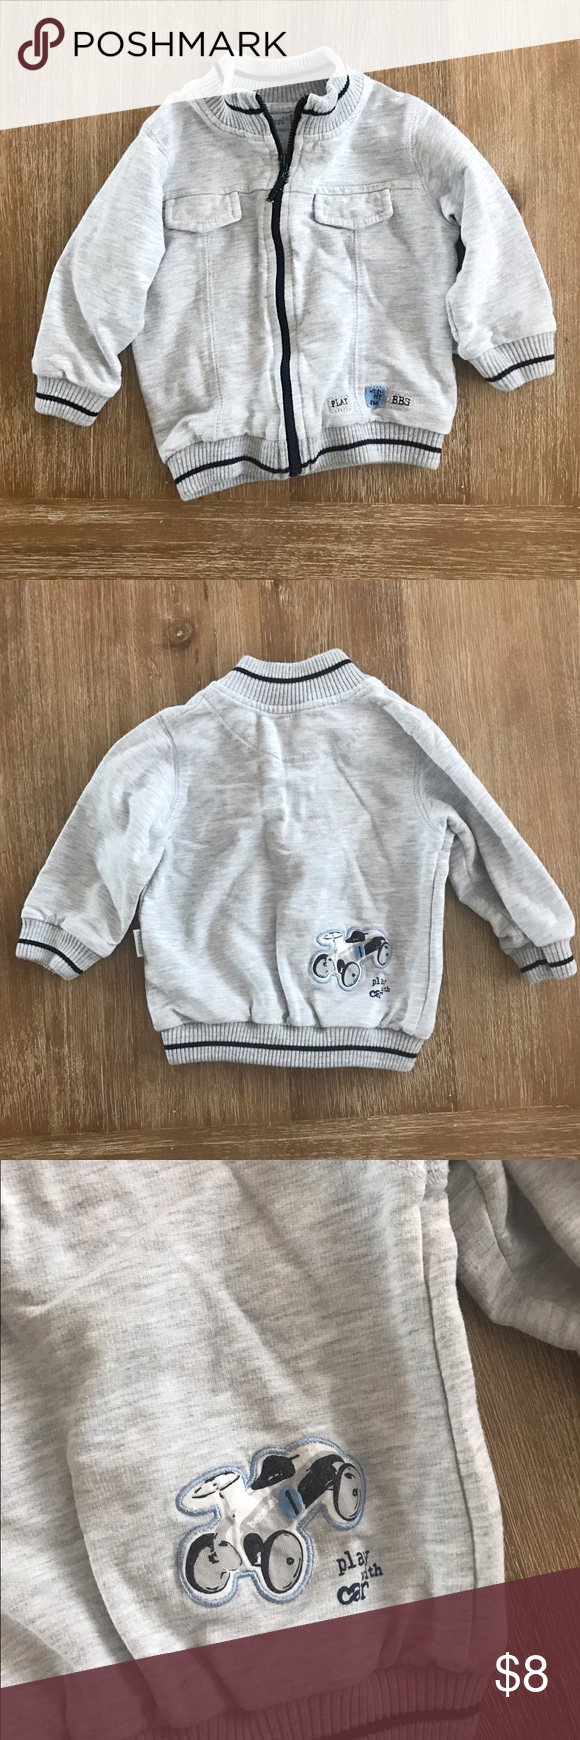 BOYS Bebessi Grey Sweatshirt Jacket 12 Months BOYS longsleeve grey light jacket zipper closure. Navy blue accent. Car on back. 12 months. Bebessi. OFFERS WELCOME | BUNDLE FOR DISCOUNT | MORE ITEMS COMING Bebessi Shirts & Tops